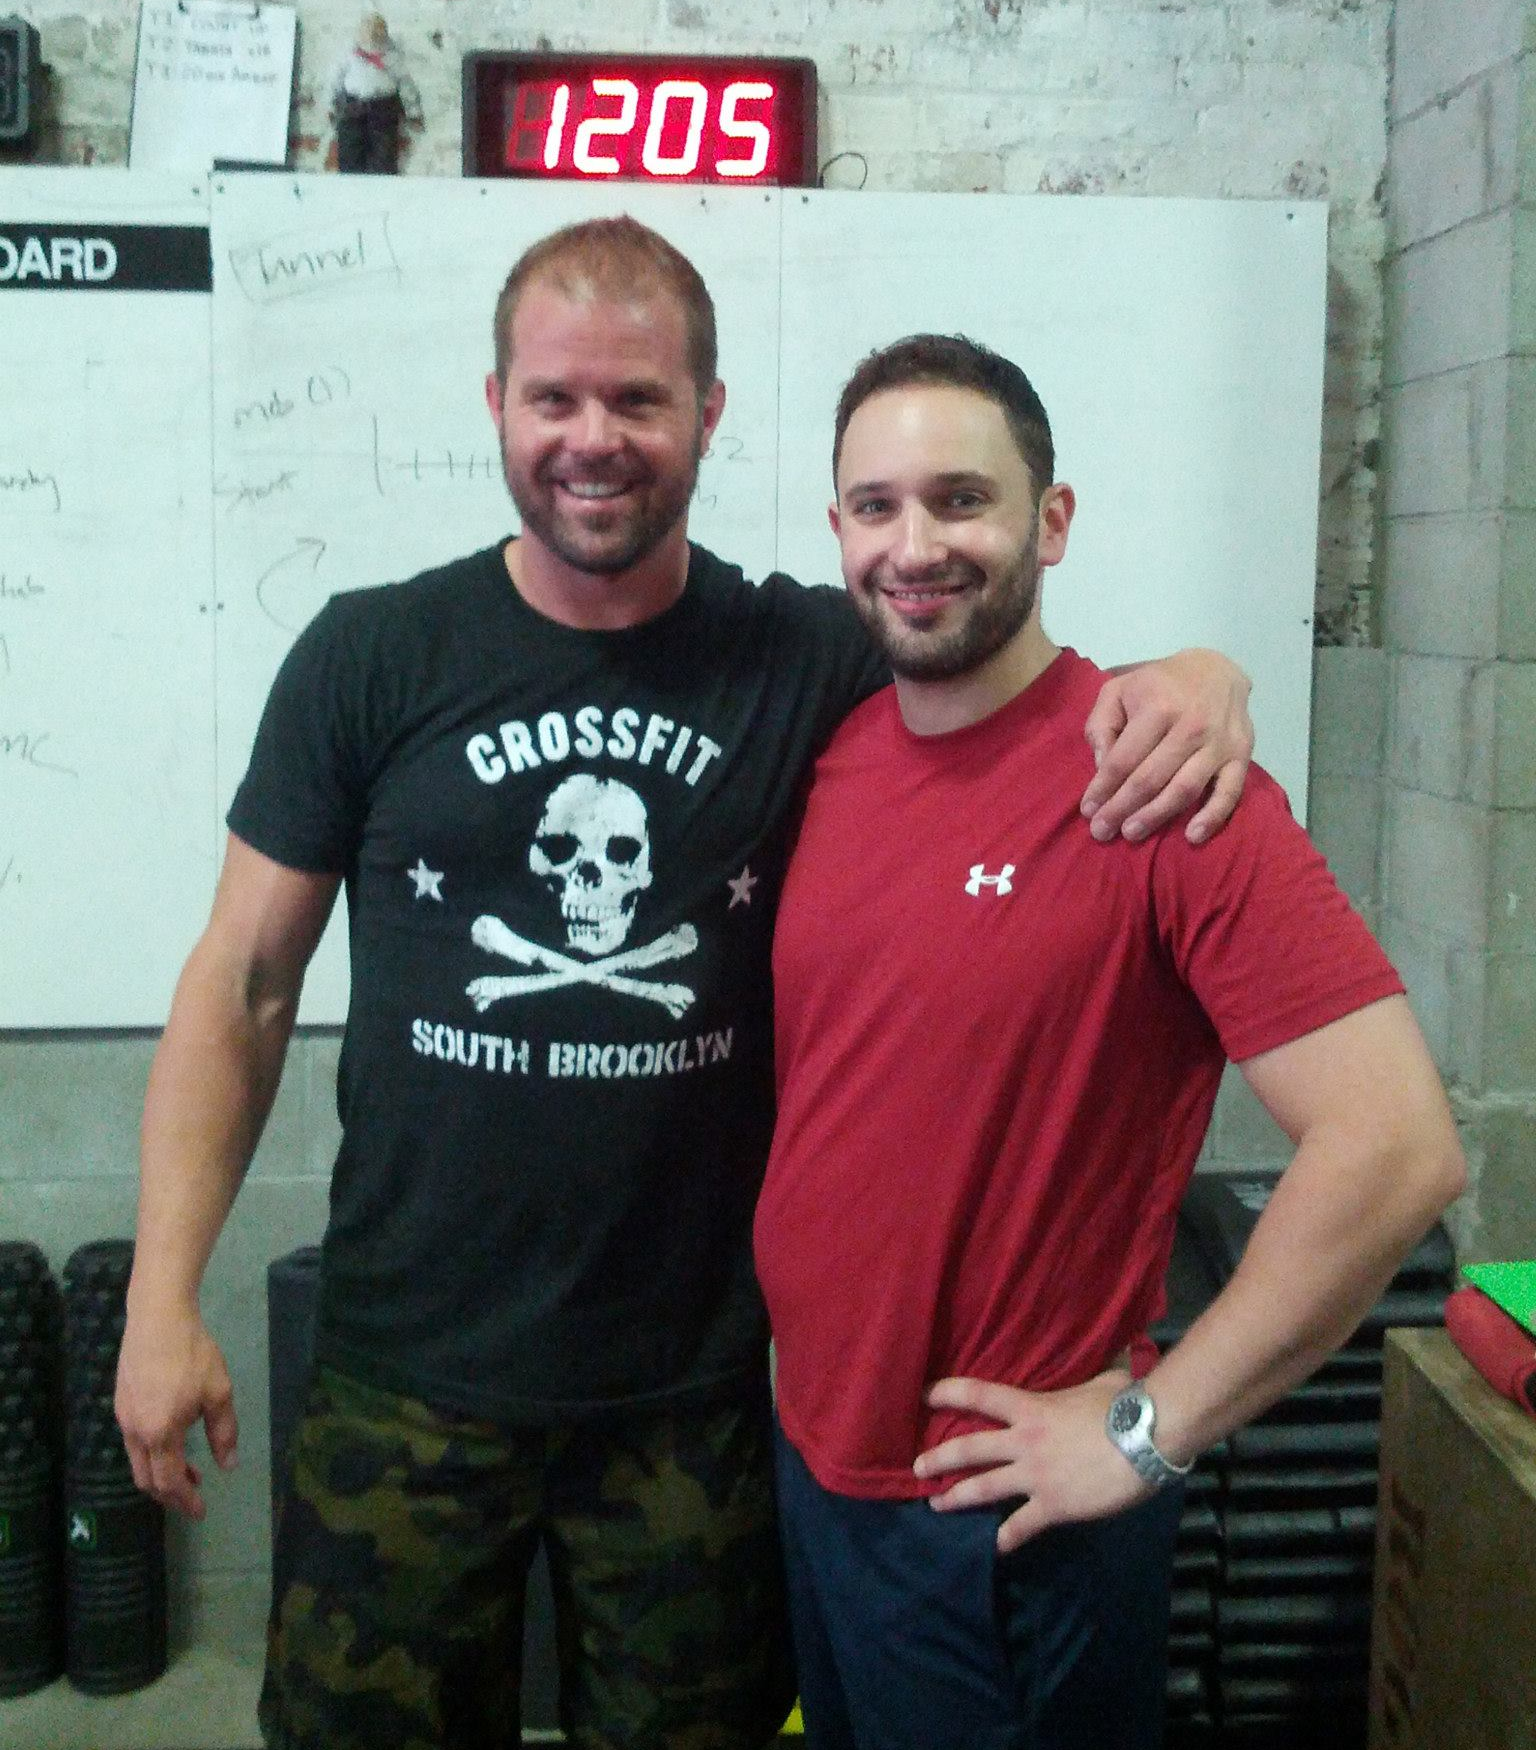 Dr. Fidler working with Dr. Kelly Starrett to teach proper biomechanics and mobility protocols.